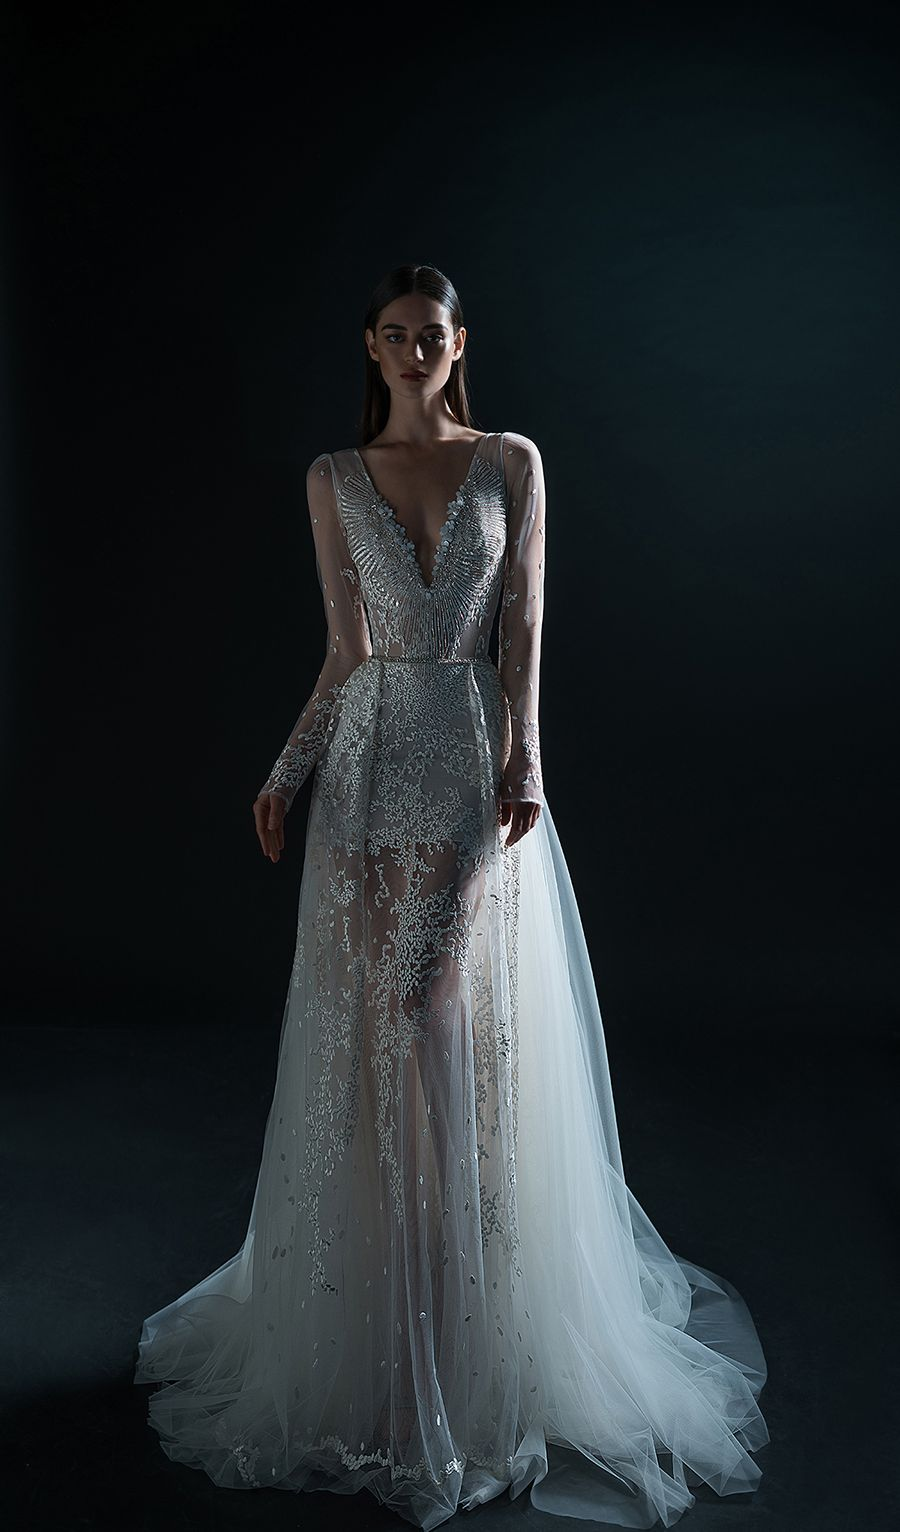 Pure By Inbal Dror 2019 Wedding Dress Collection Inbal Dror Wedding Dresses Lace Bridal Gown Wedding Dress Tulle Lace